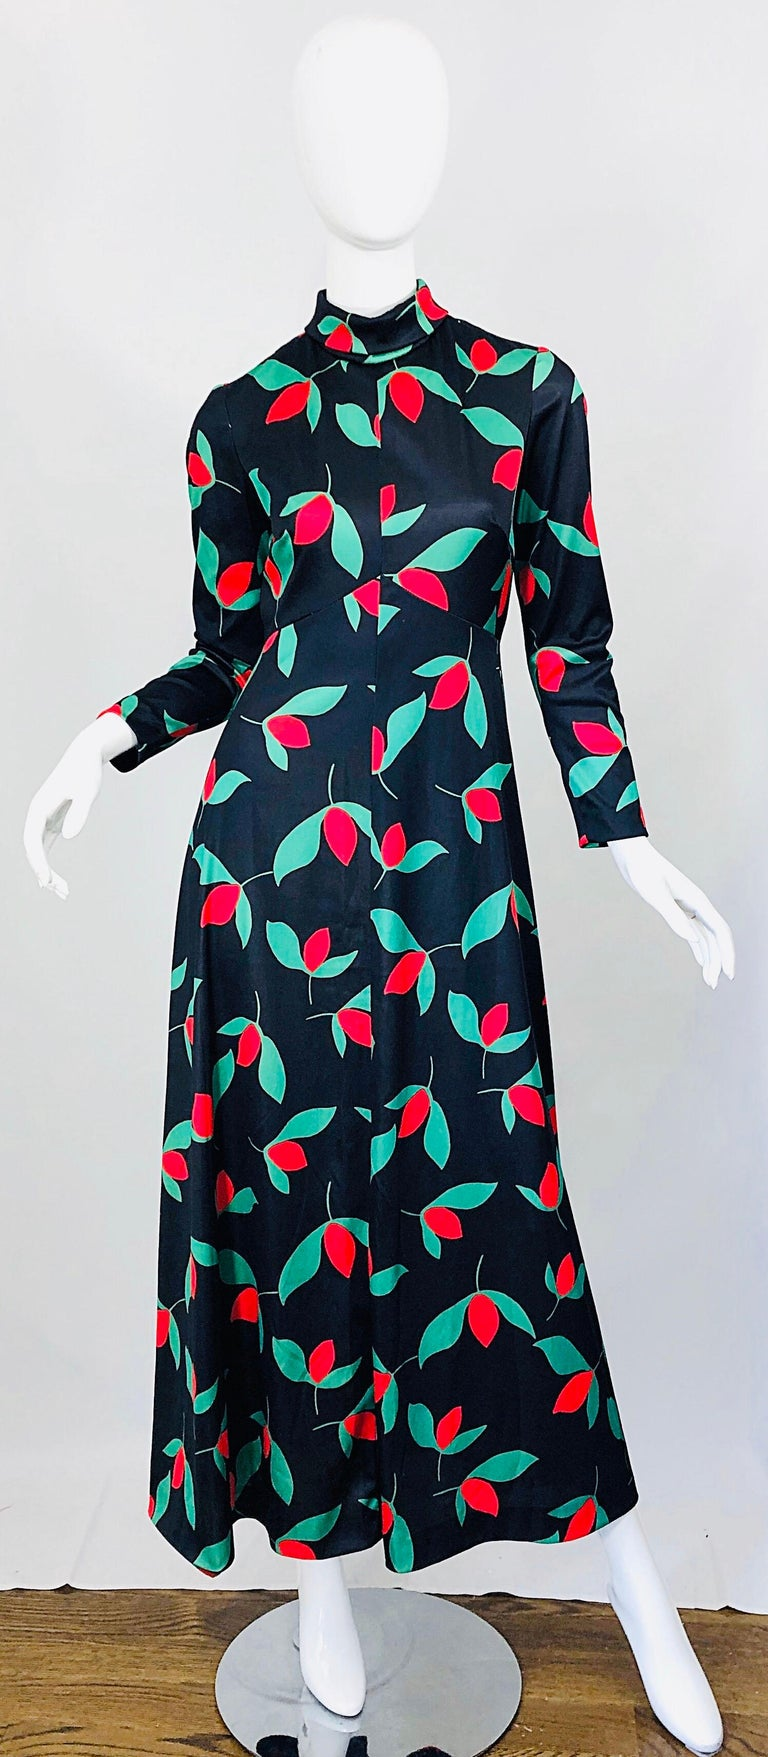 1970s Emilio Borghese Tulip Print Black + Green + Red Vintage 70s Maxi Dress For Sale 10